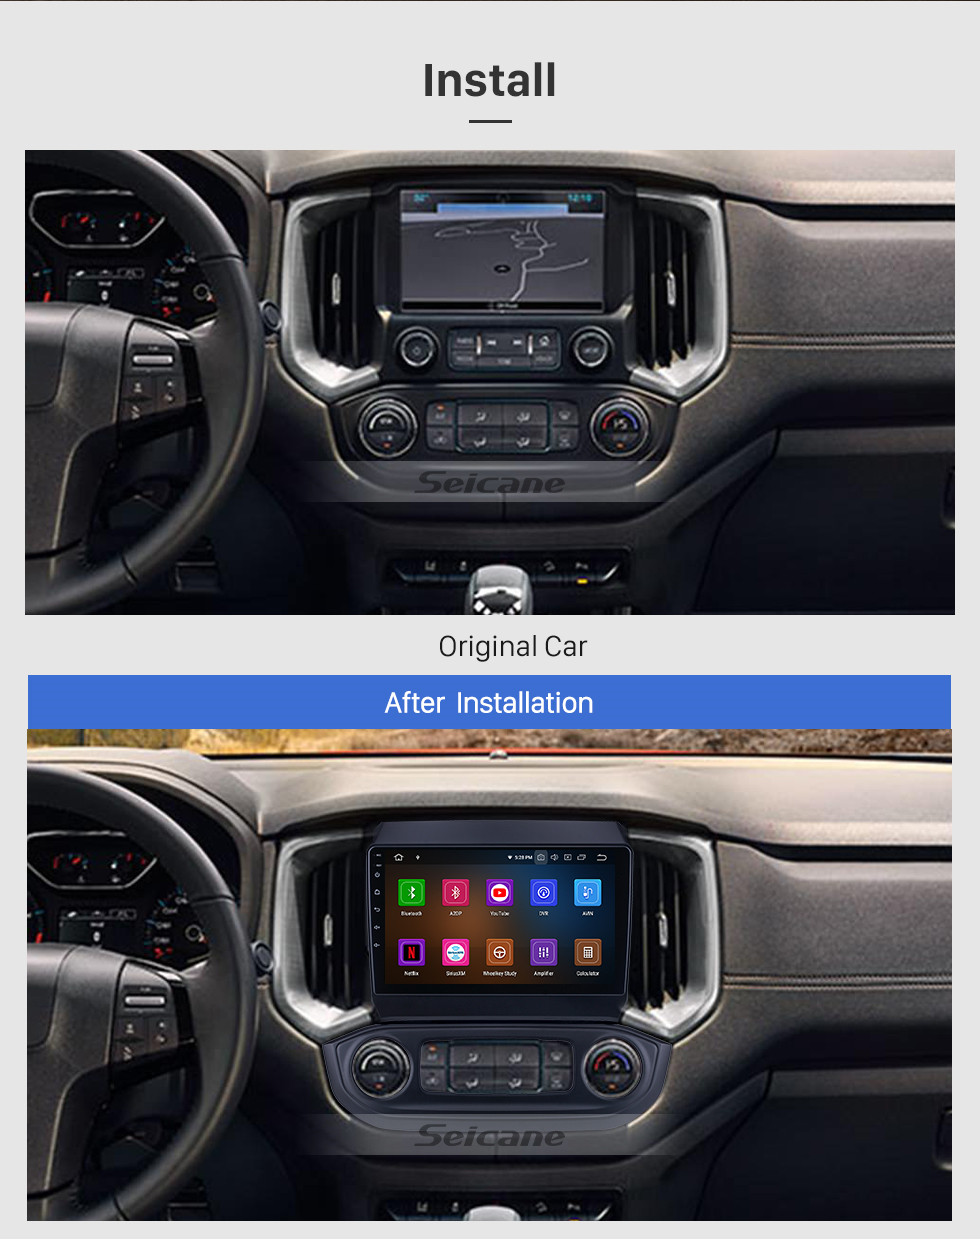 Seicane OEM Android 10.0 for 2017 Chevy Chevrolet Colorado Radio with Bluetooth 9 inch HD Touchscreen GPS Navigation System Carplay support DSP